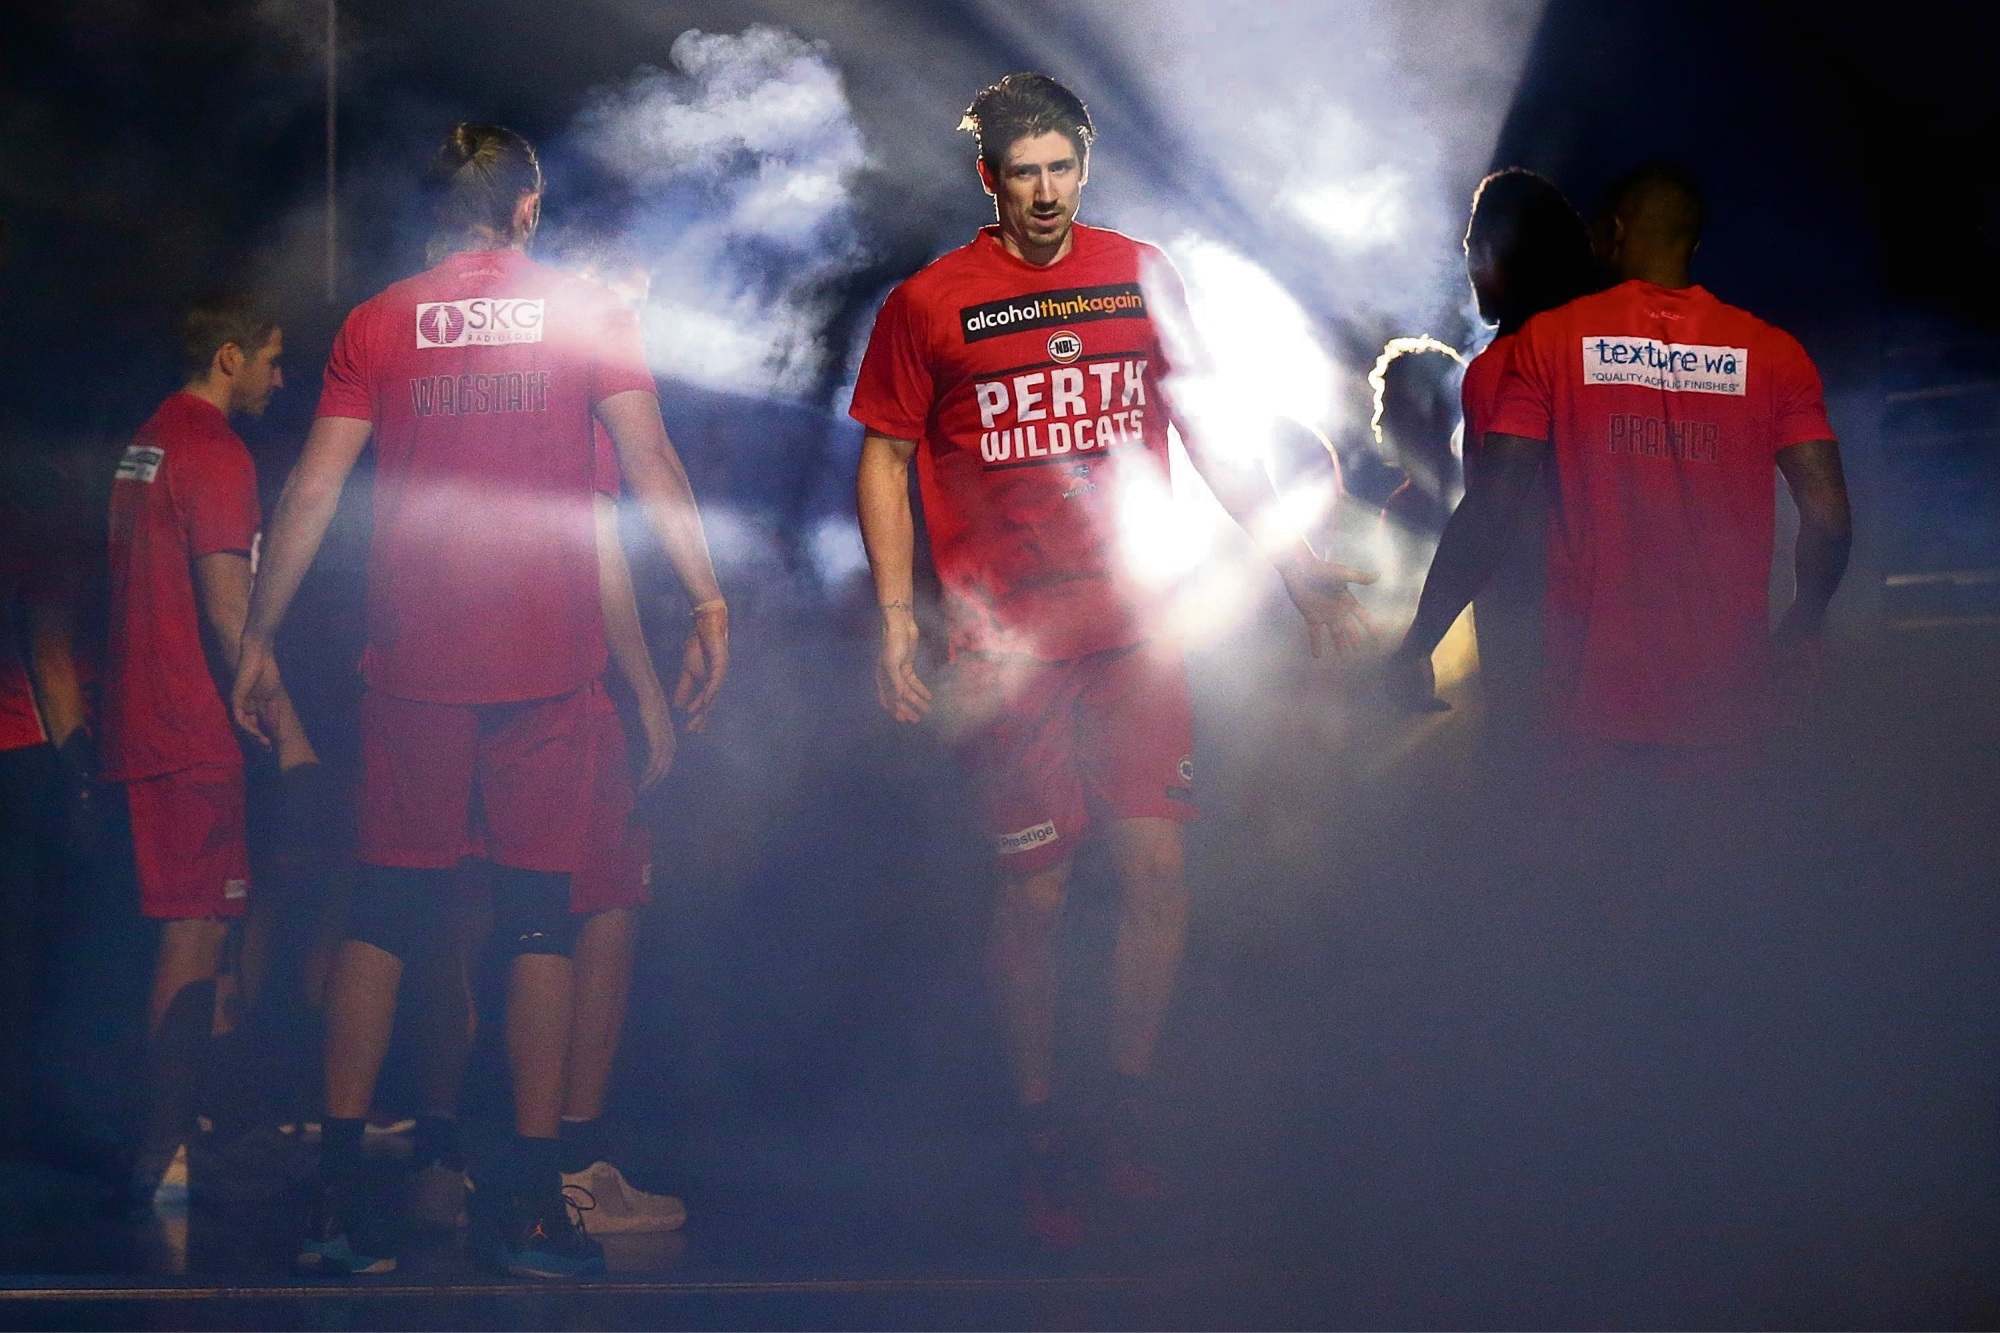 Perth Wildcats' Greg Hire appeals two-game NBL suspension